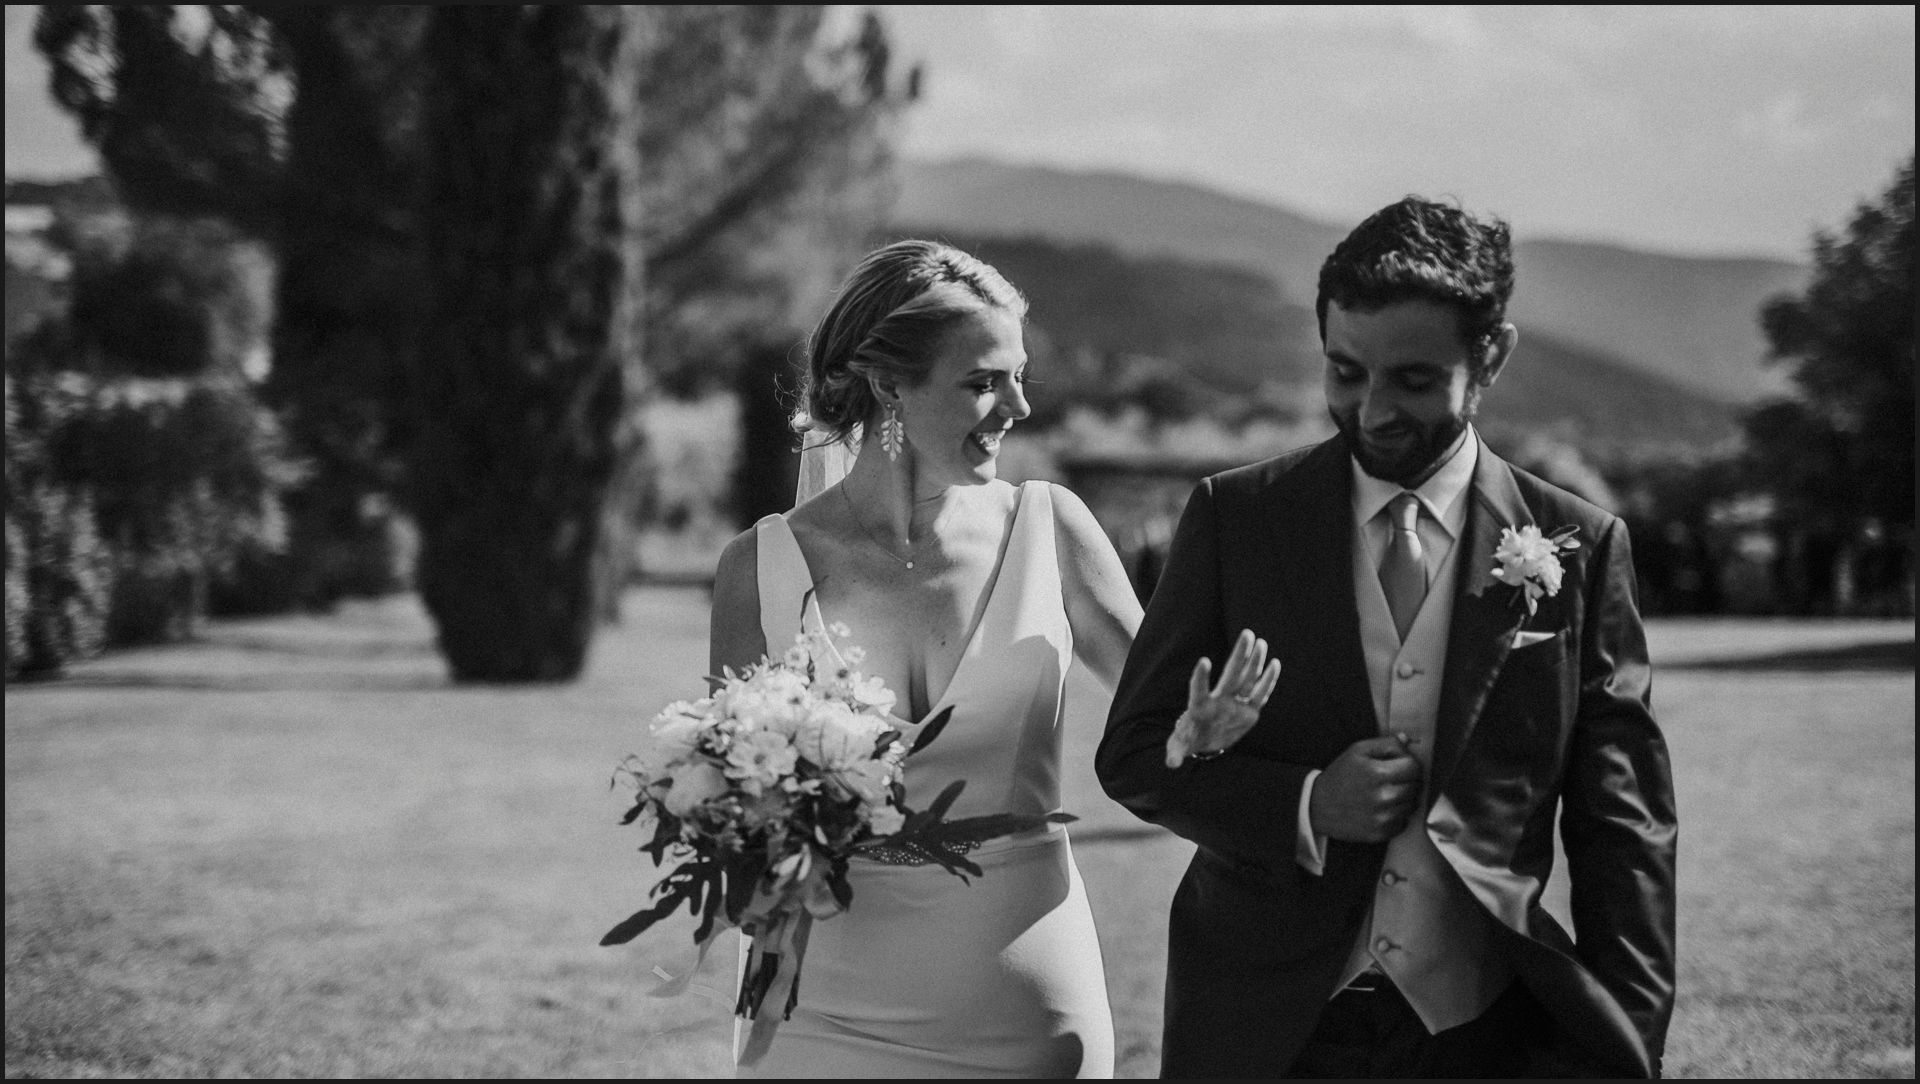 tenuta di canonica, umbria, wedding, ceremony, country, bride, groom, black and white